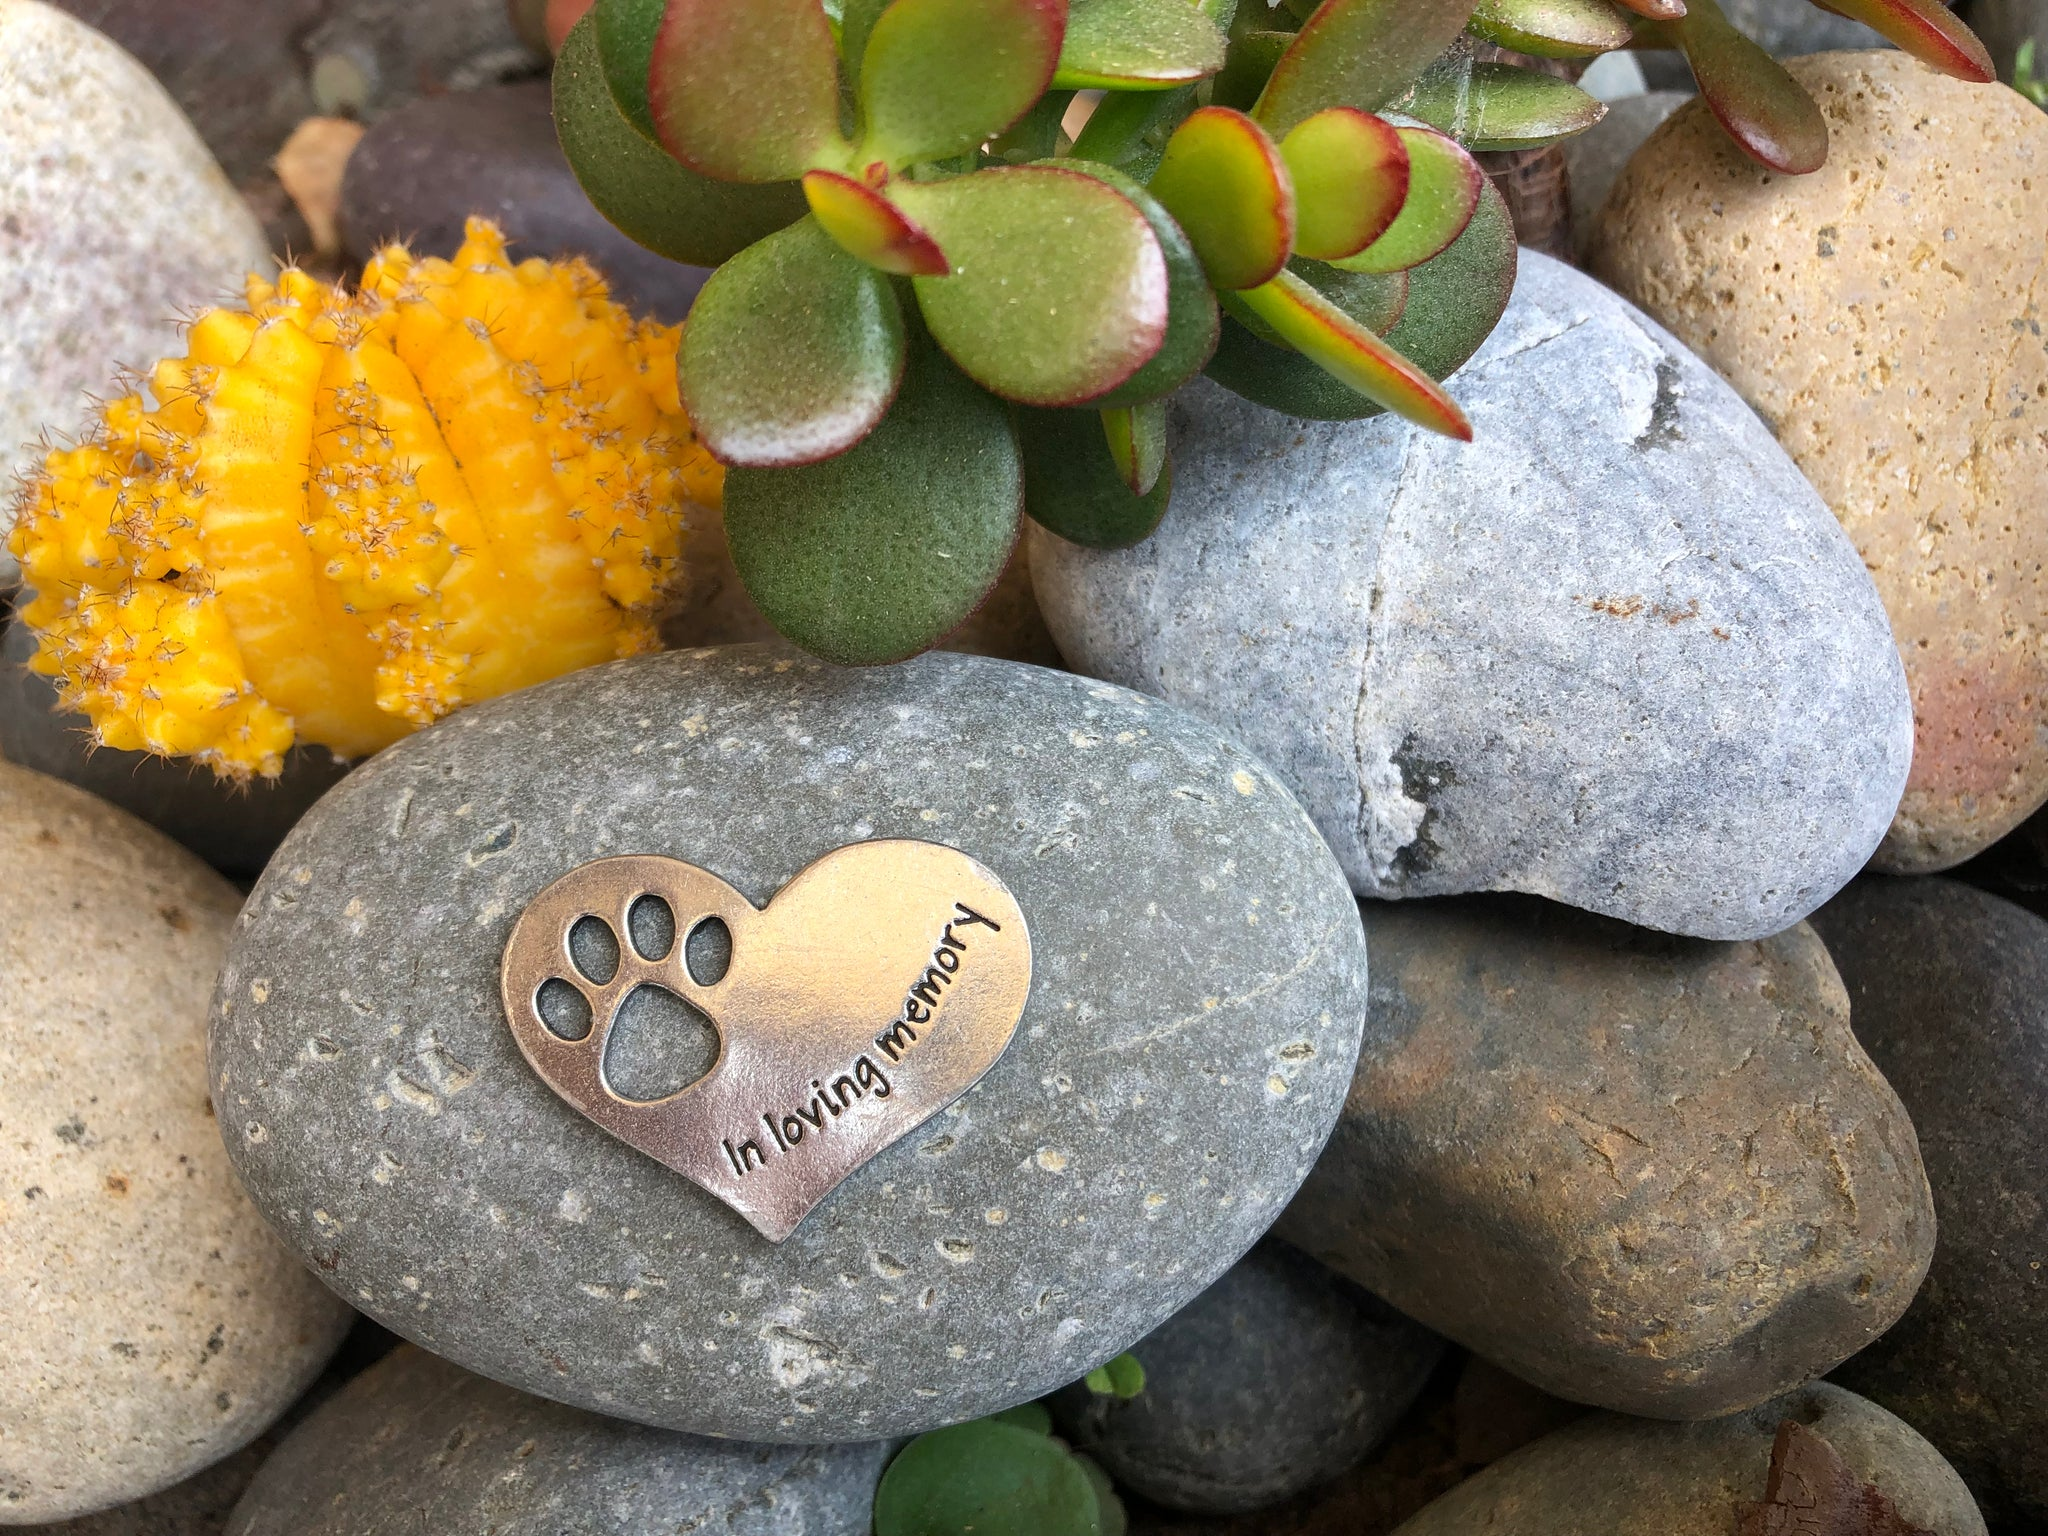 Pet Memorial Gift In Loving Memory Paw Print Stone for Dogs or Cats - Sympathy Remembrance Gift by Whitney Howard Designs - Whitney Howard Designs